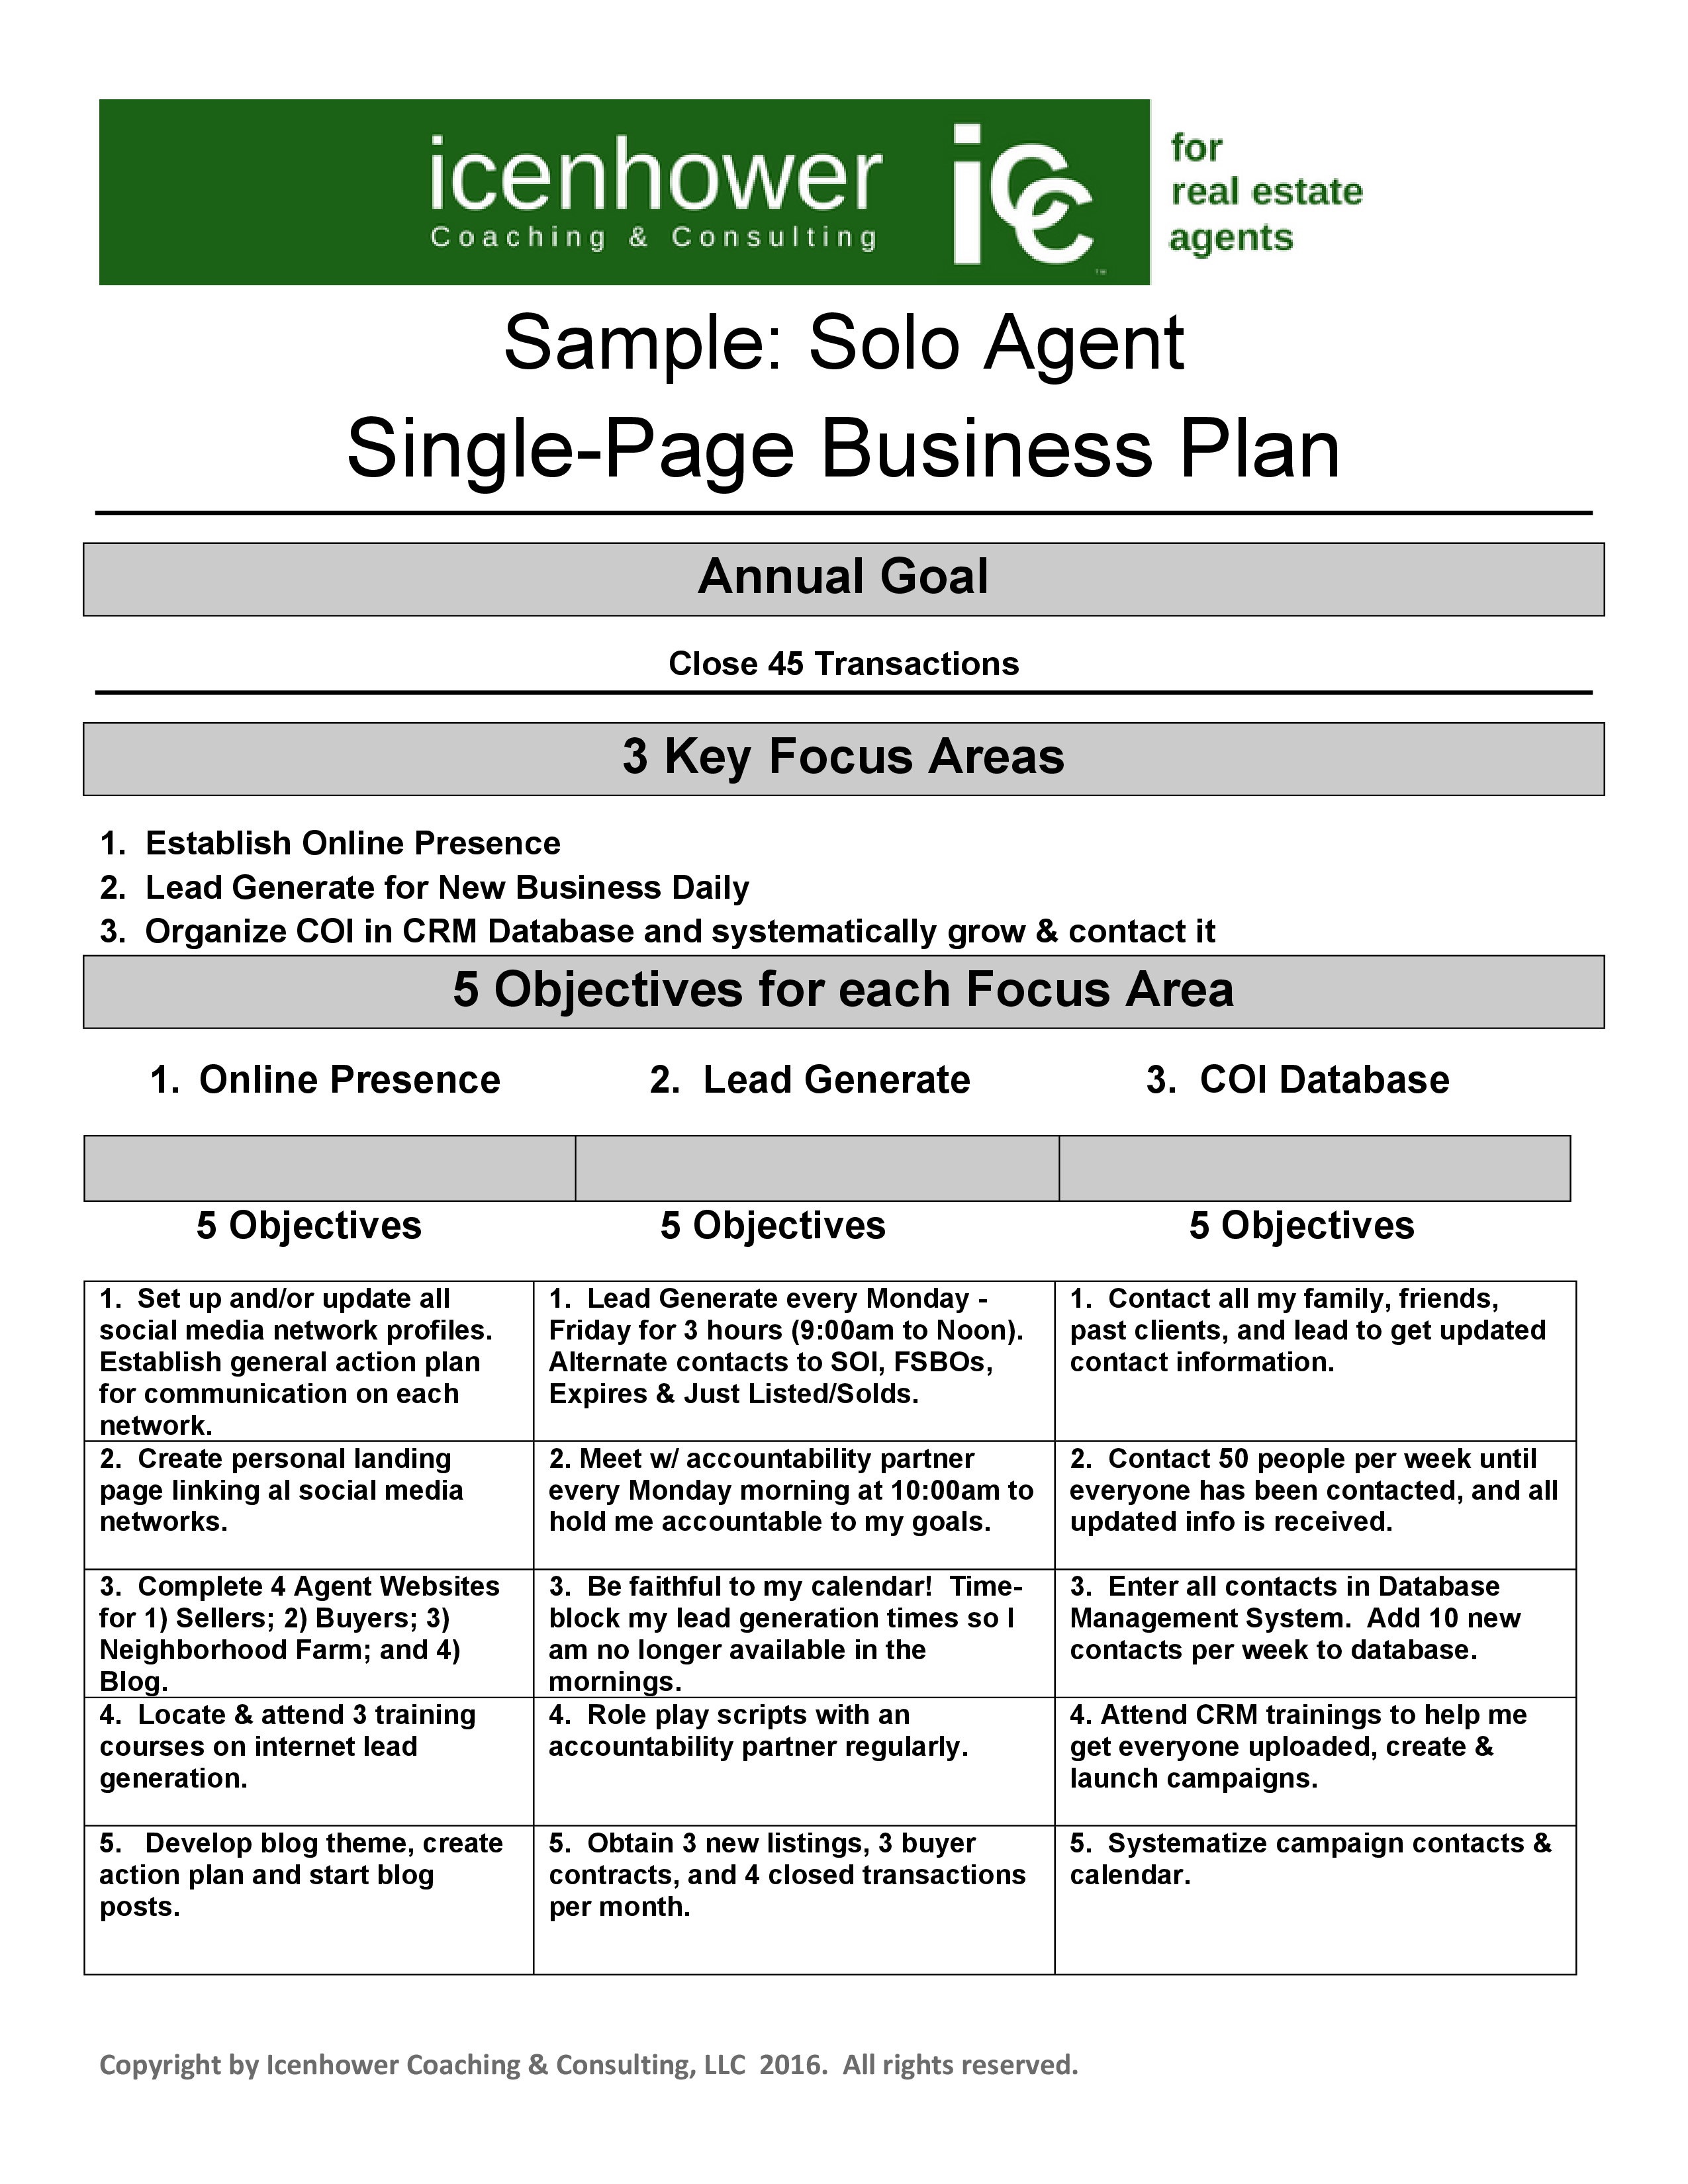 how to write a business plan real estate agent professional how to write a business plan real estate agent how to write a business plan for